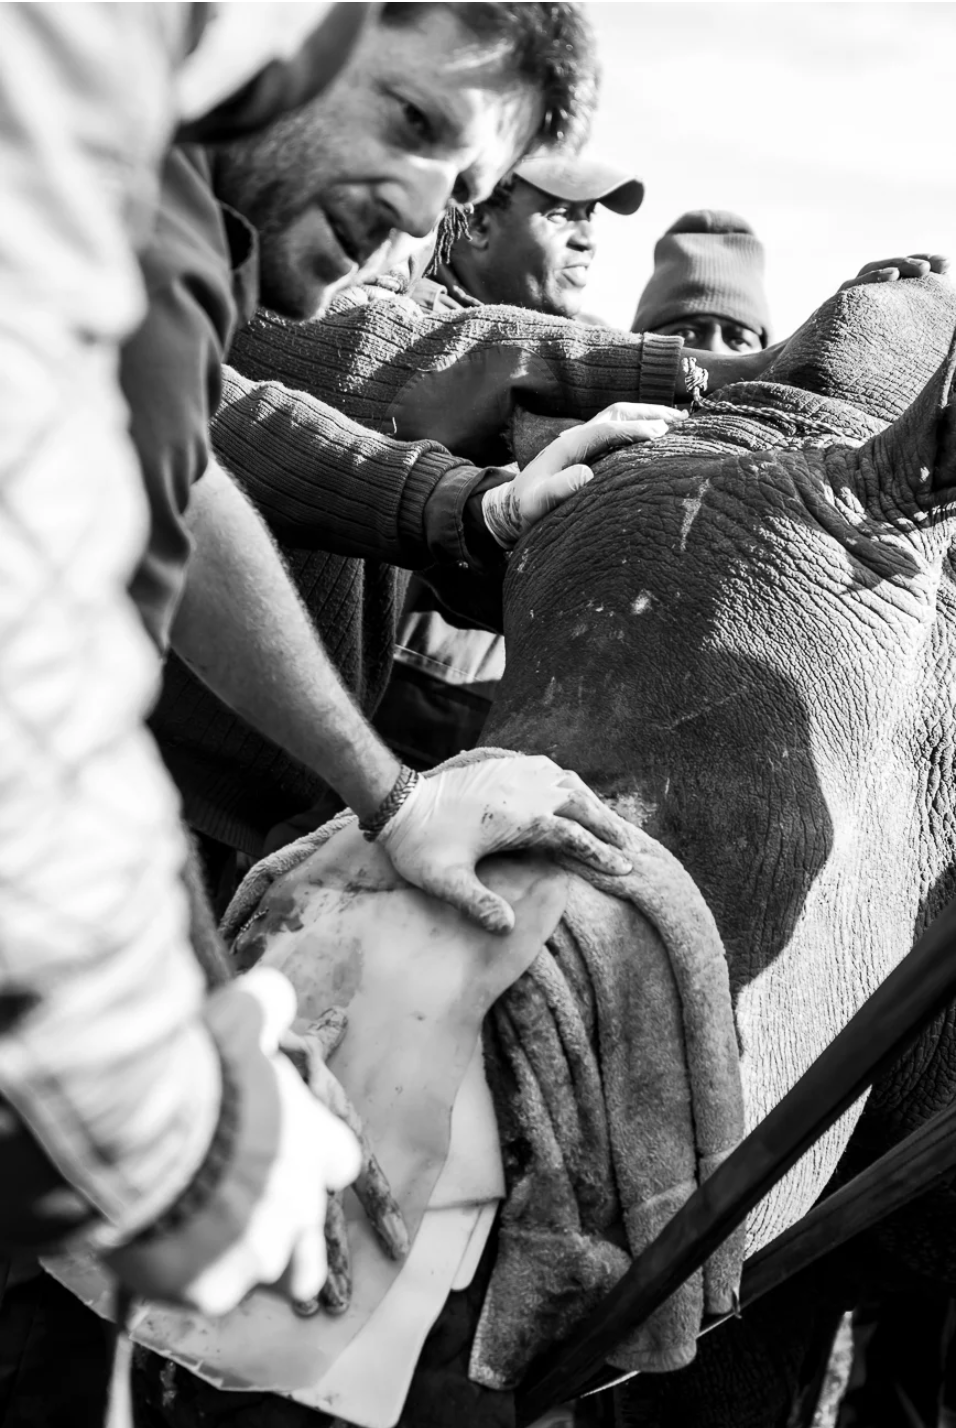 Concerned faces for Hope, many helping hands and man-power were required to reposition such a large animal.